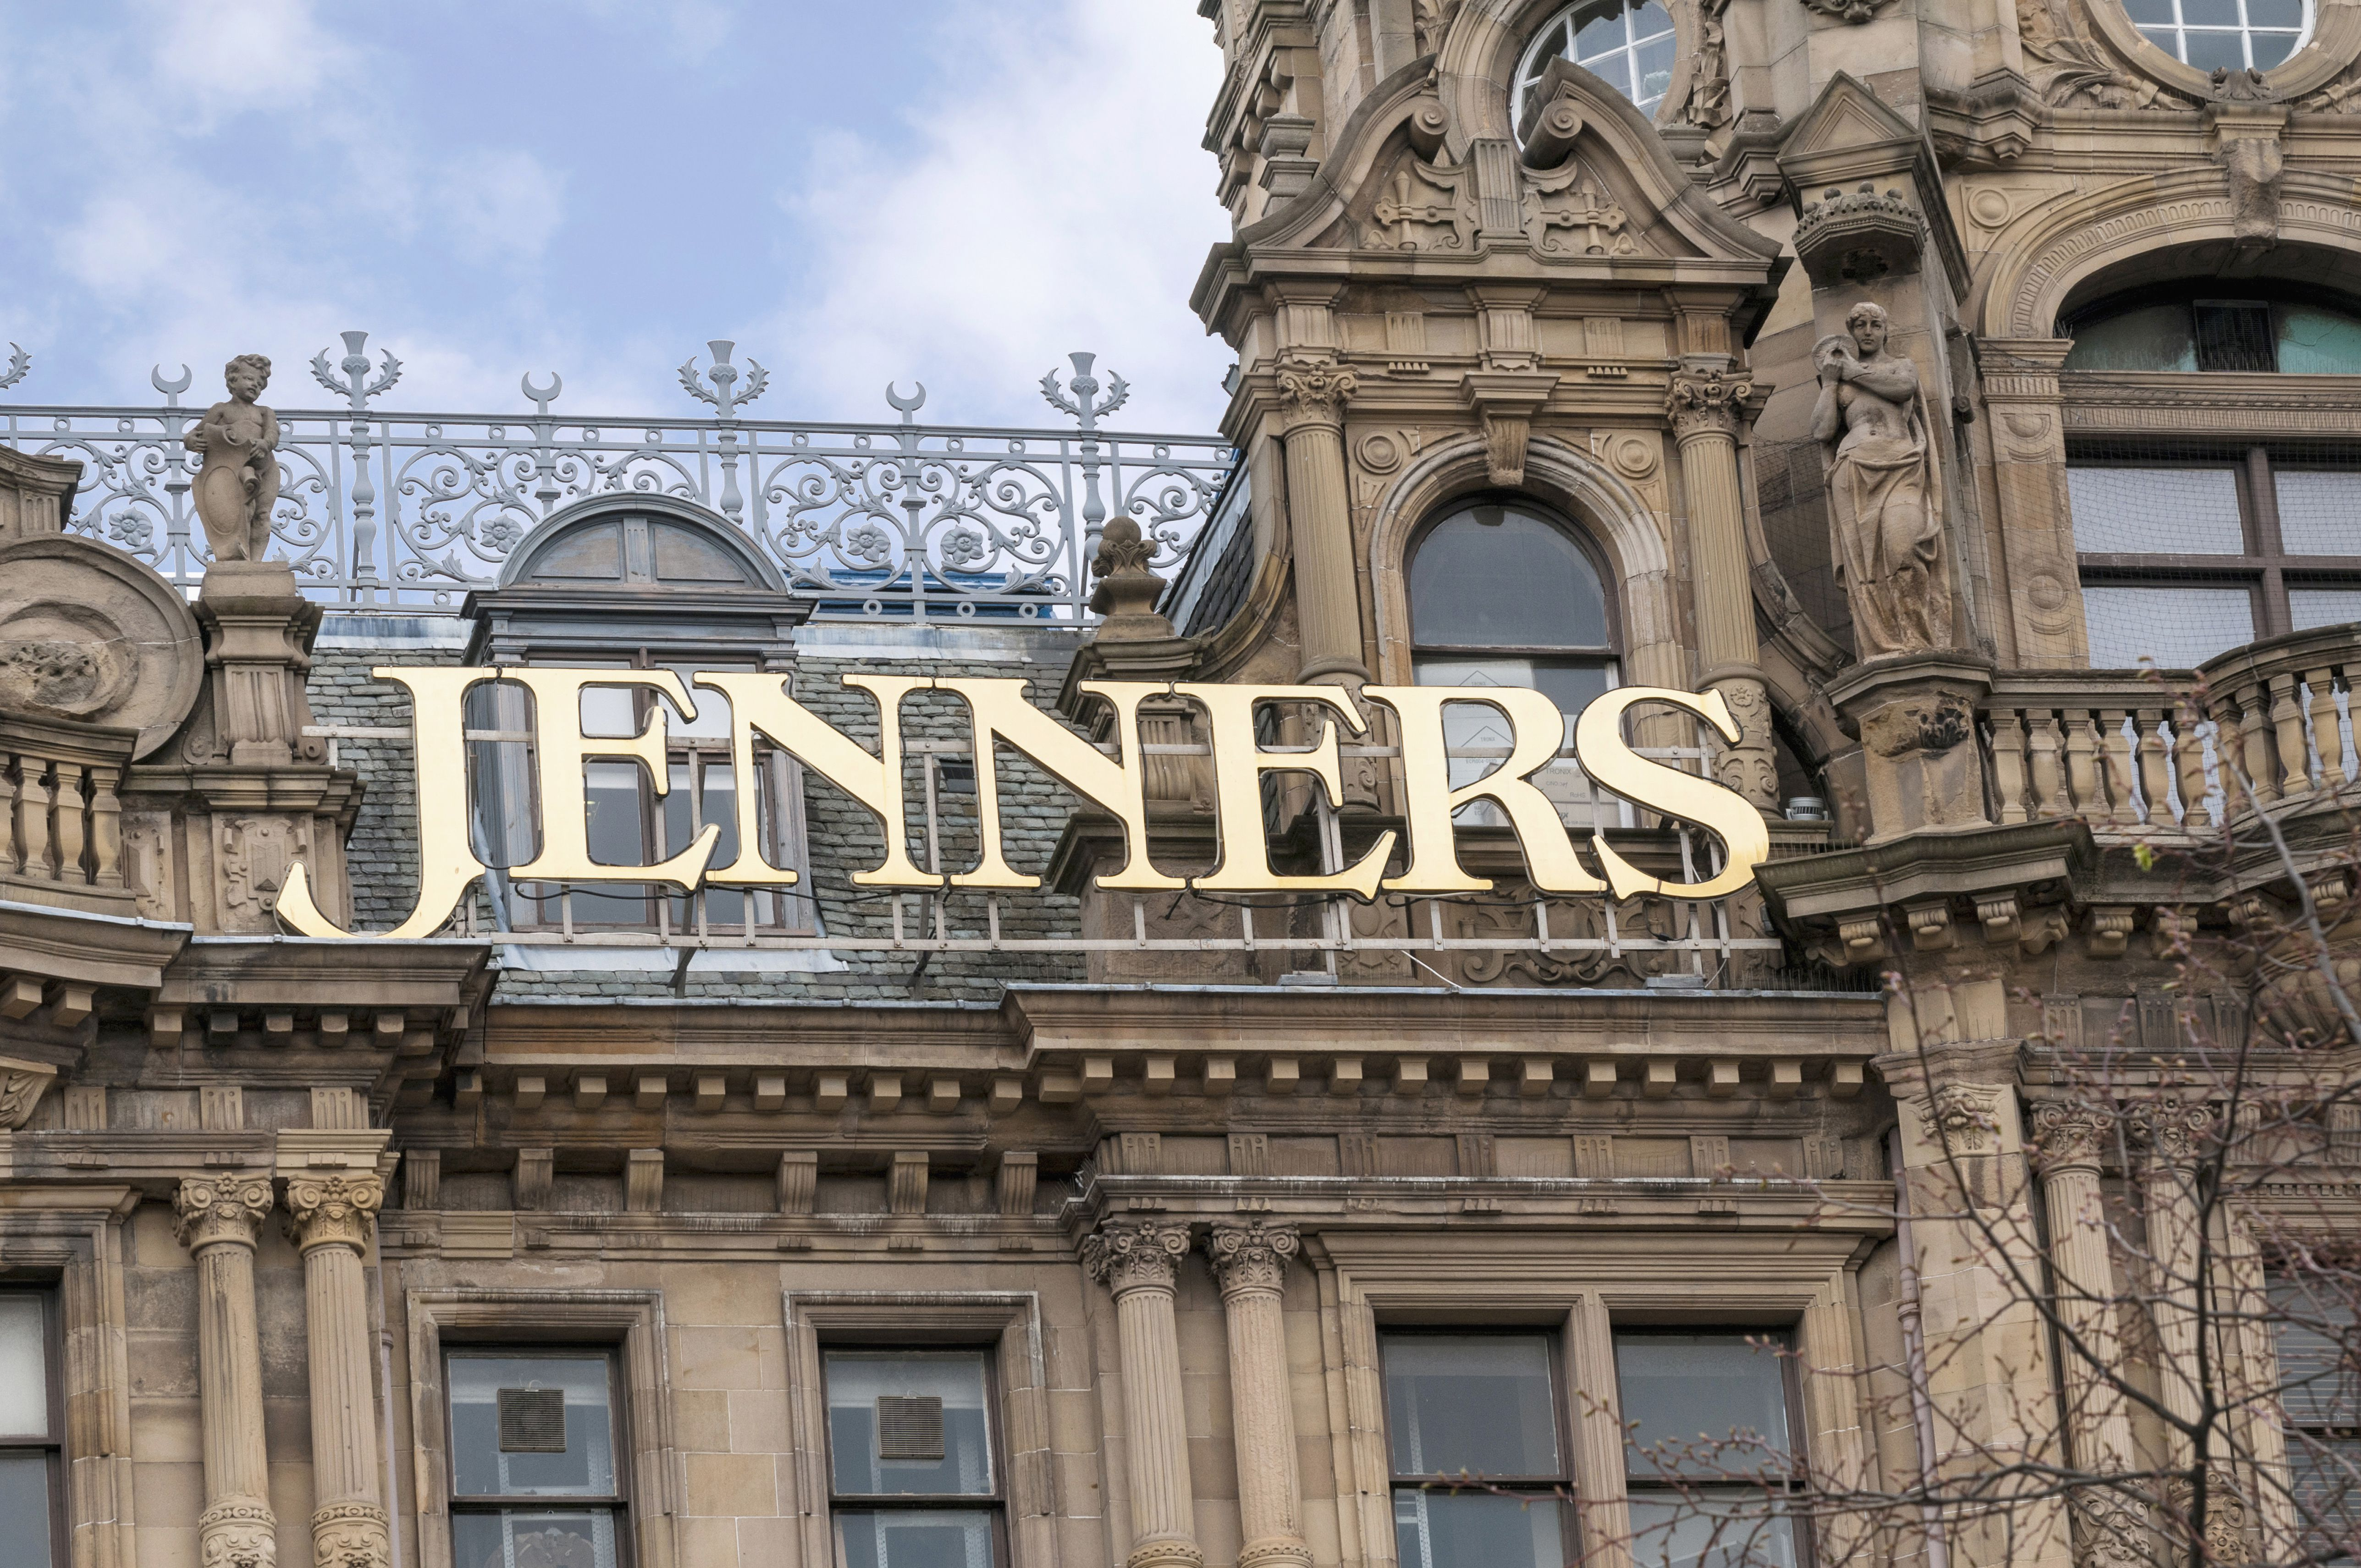 Jenners department store sign, Edinburgh, Scotland, UK also known as House of Fraser